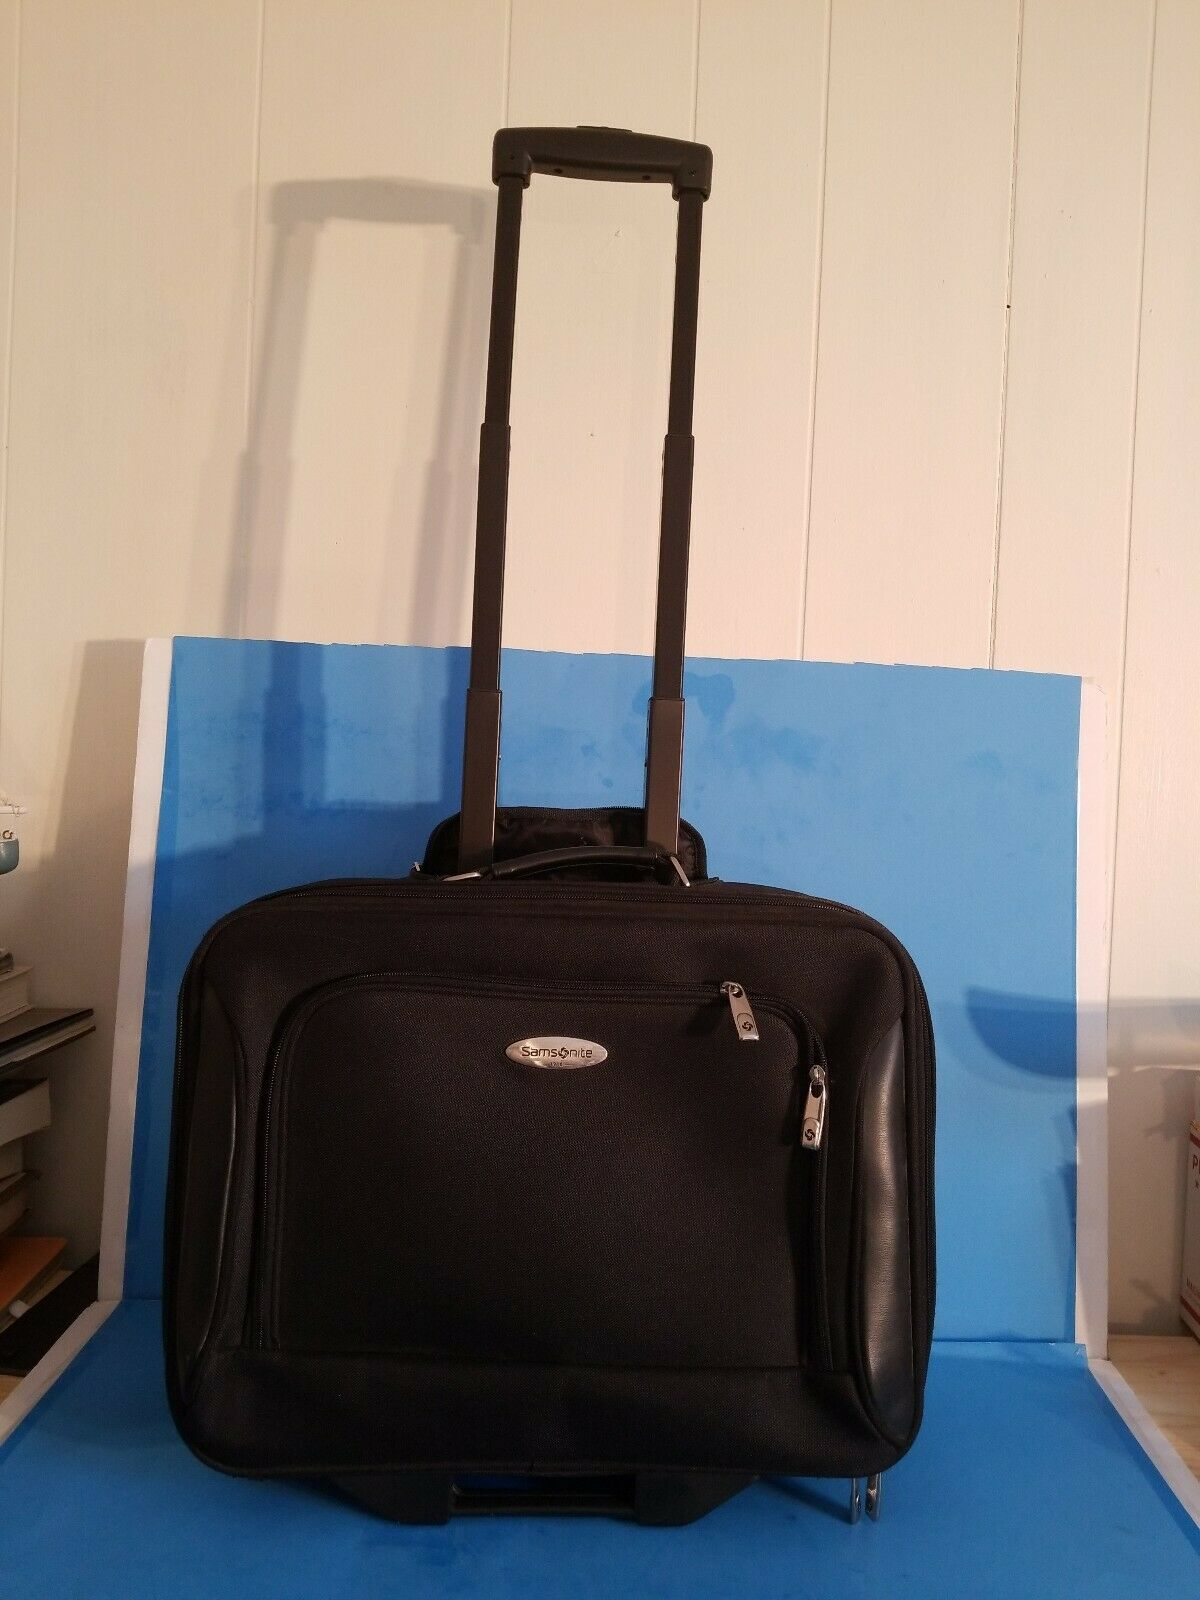 Primary image for Samsonite small Carry-on Suitcase.USED.